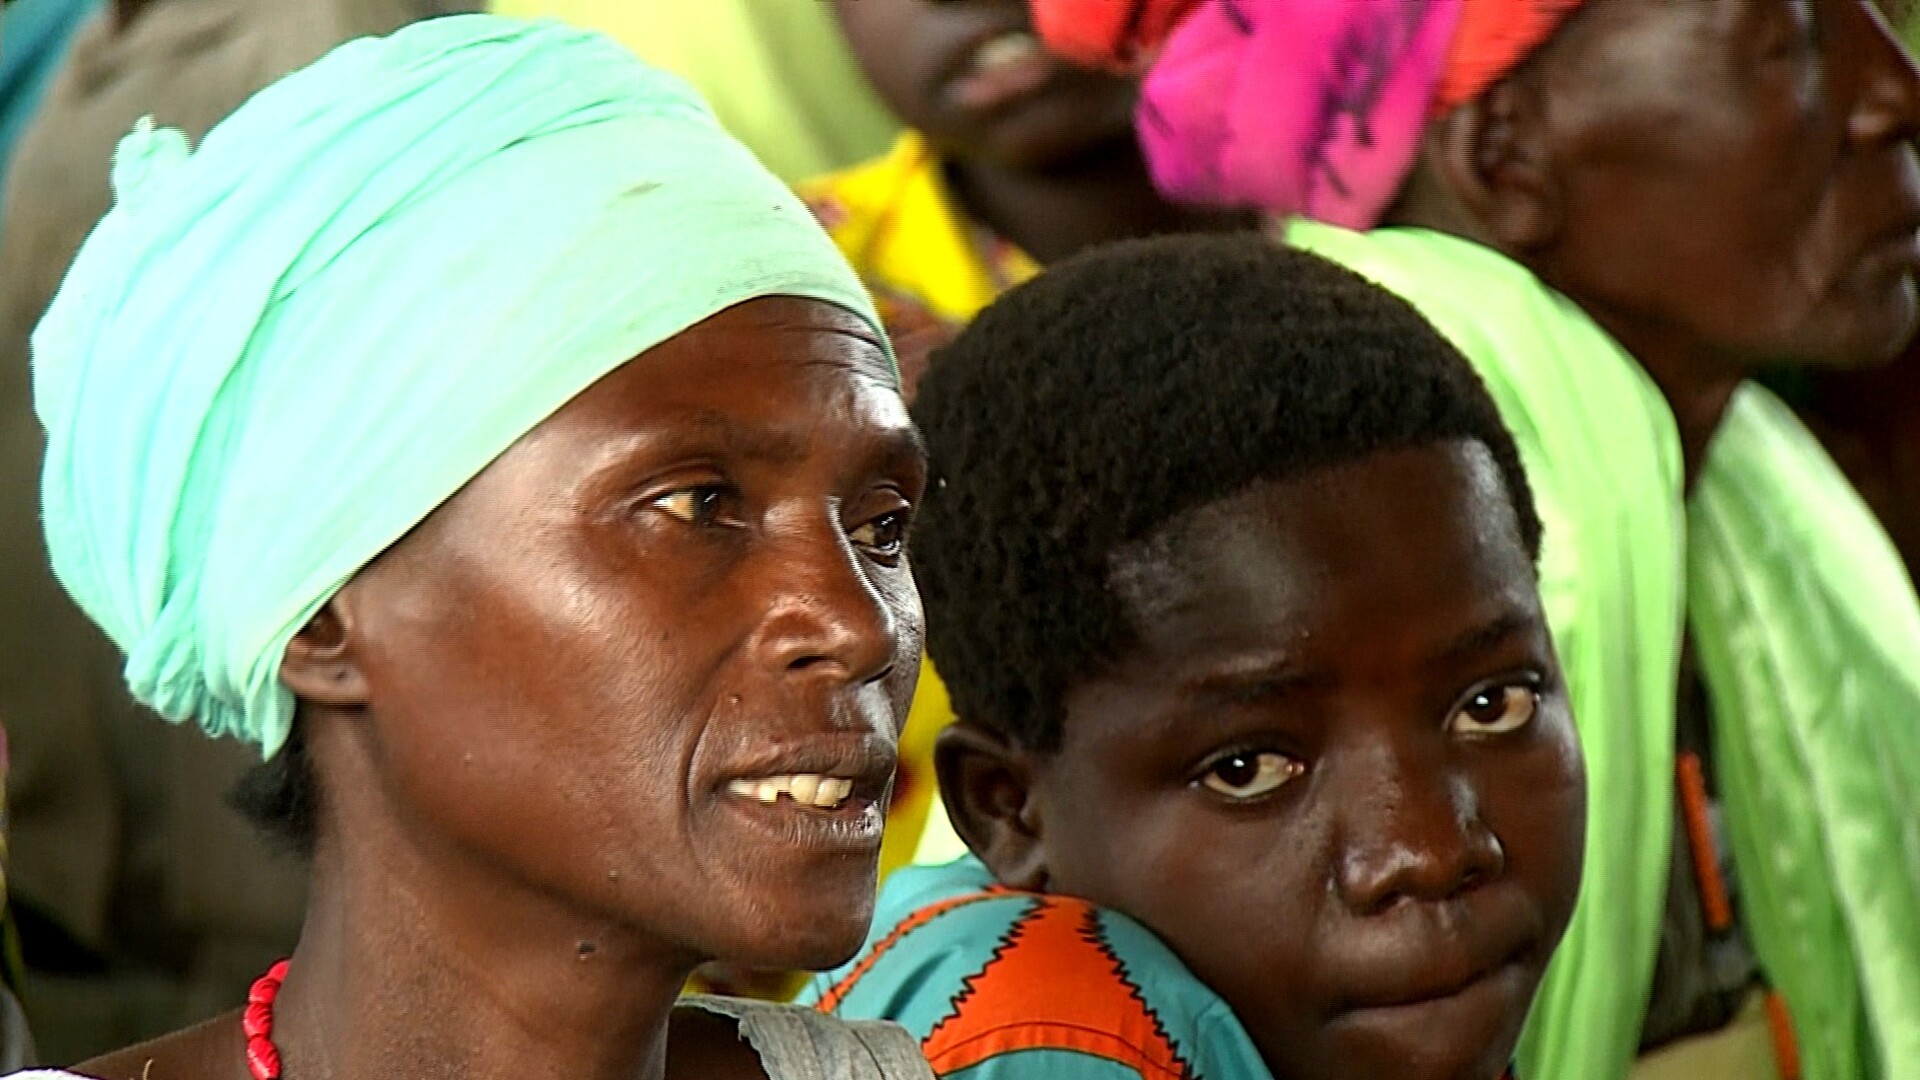 Fighting forces DR Congo refugees to flee to Uganda